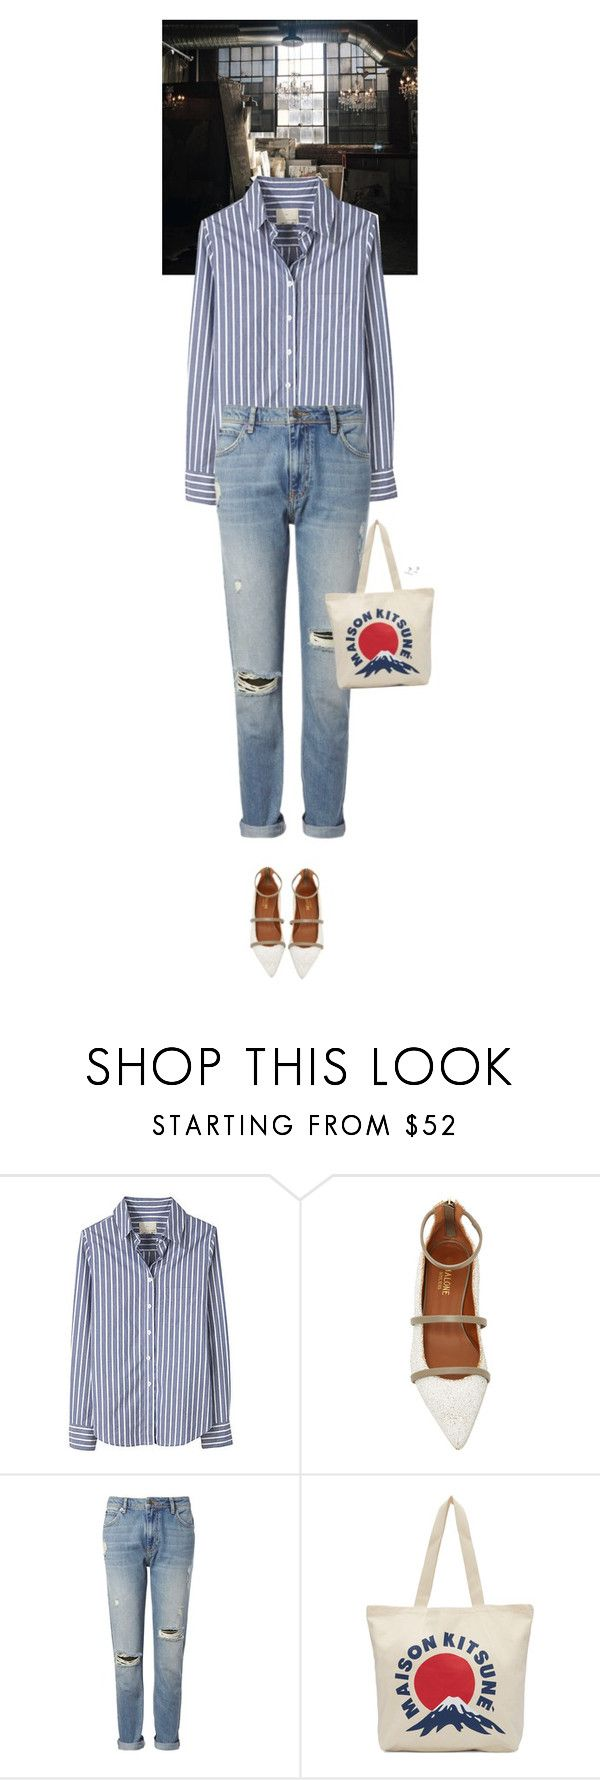 """""""Outfit of the Day"""" by wizmurphy ❤ liked on Polyvore featuring Band of Outsiders, Malone Souliers, Whistles, Maison Kitsuné, stripes and ootd"""